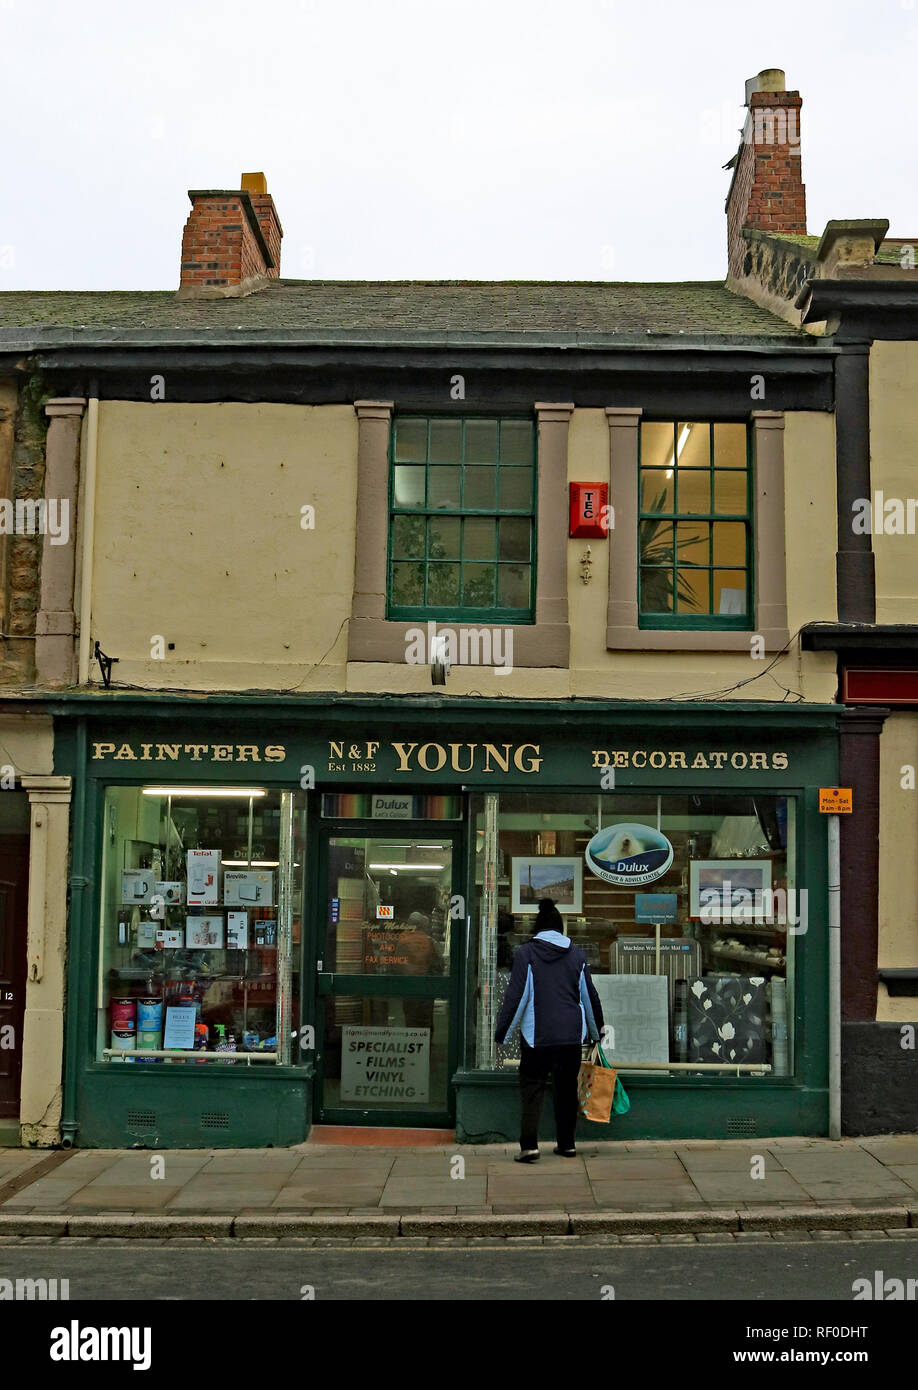 N and F Young painters and decorators high street shop Amble  Amble is a small town on the north east coast of Northumberland in North East England. - Stock Image